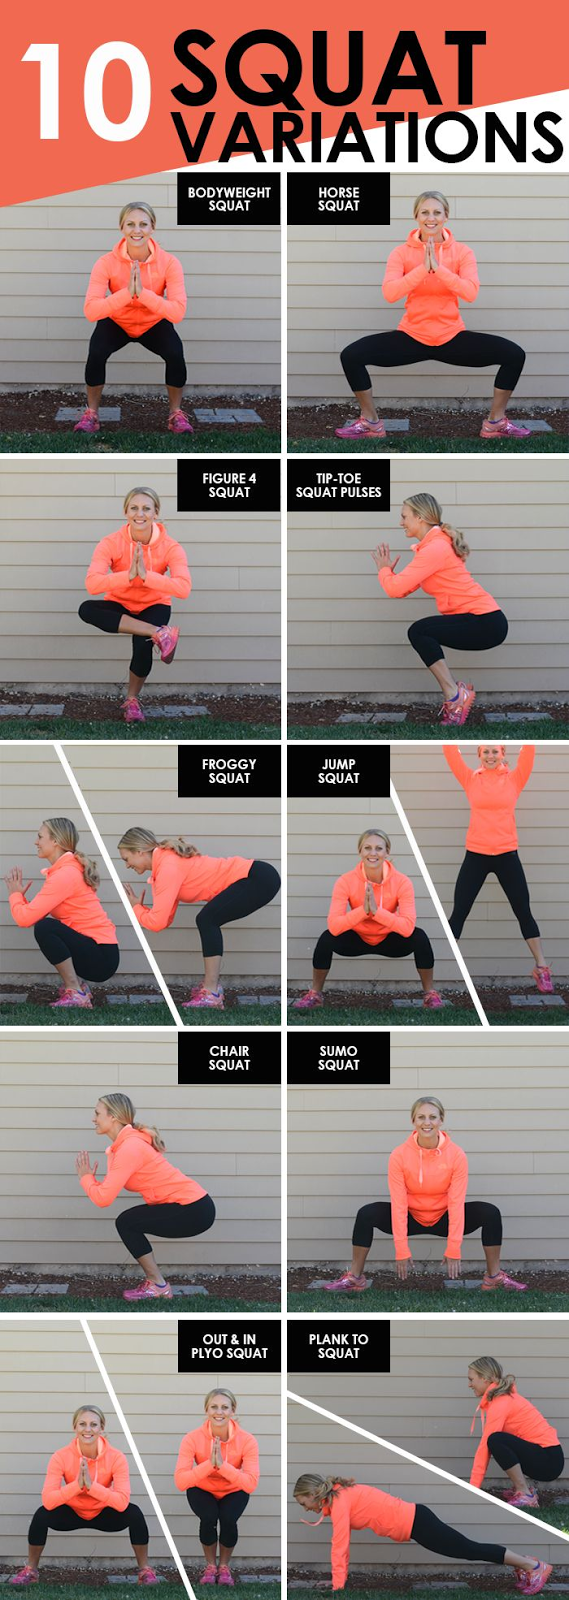 10 Squat Variations + The Northface Mountain Athletics Gear